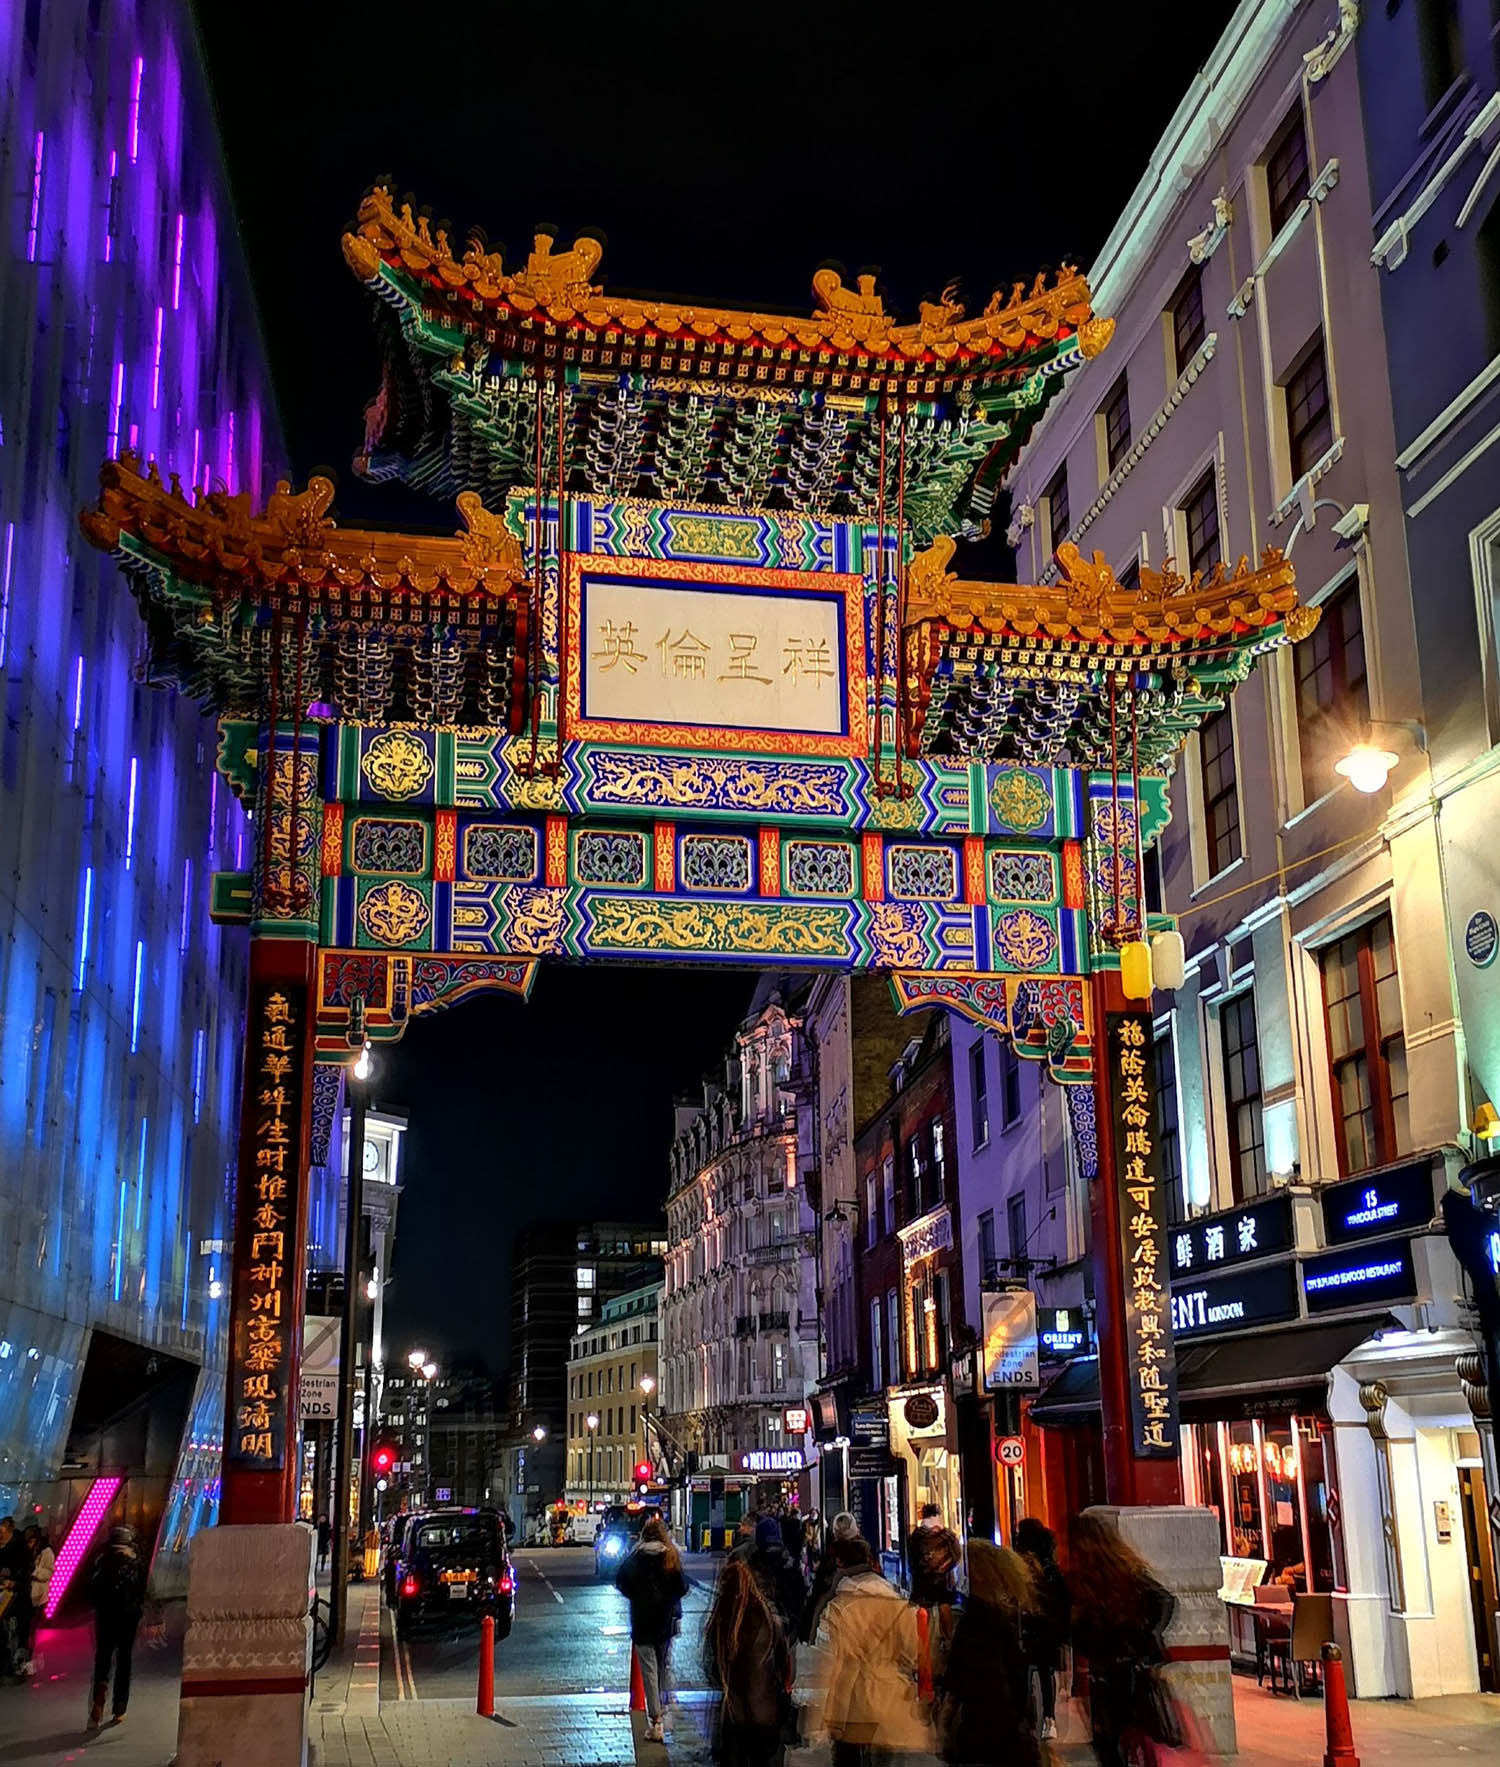 Orient_London_Chinatown_Arch.